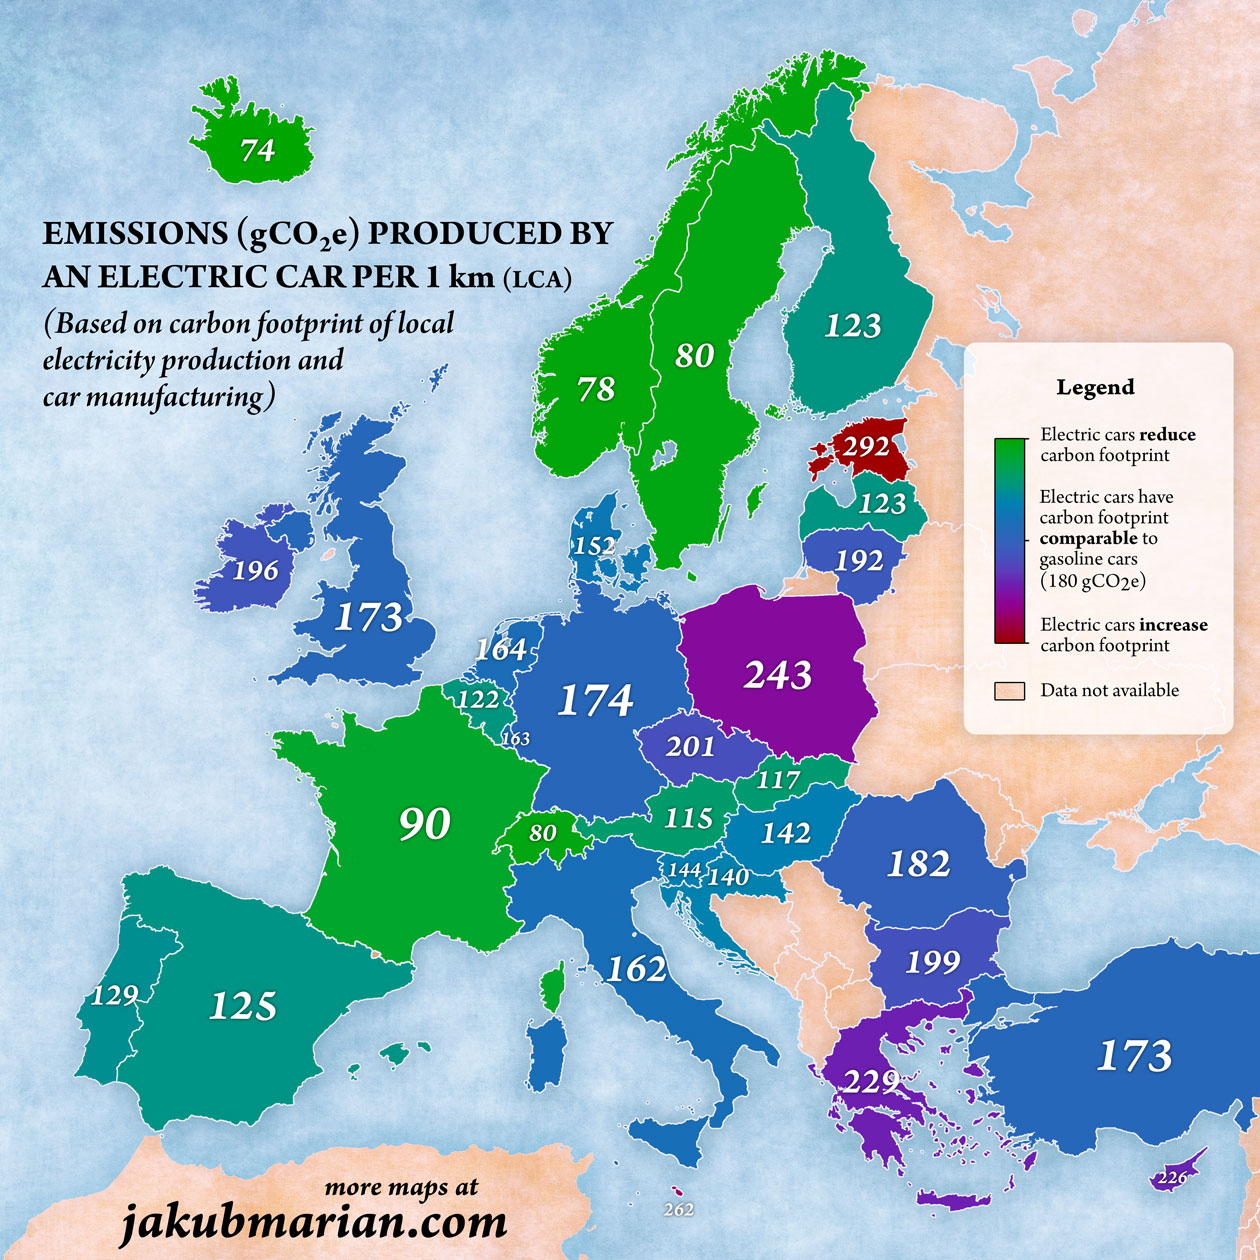 Emissions produced by an electric car per 1 km